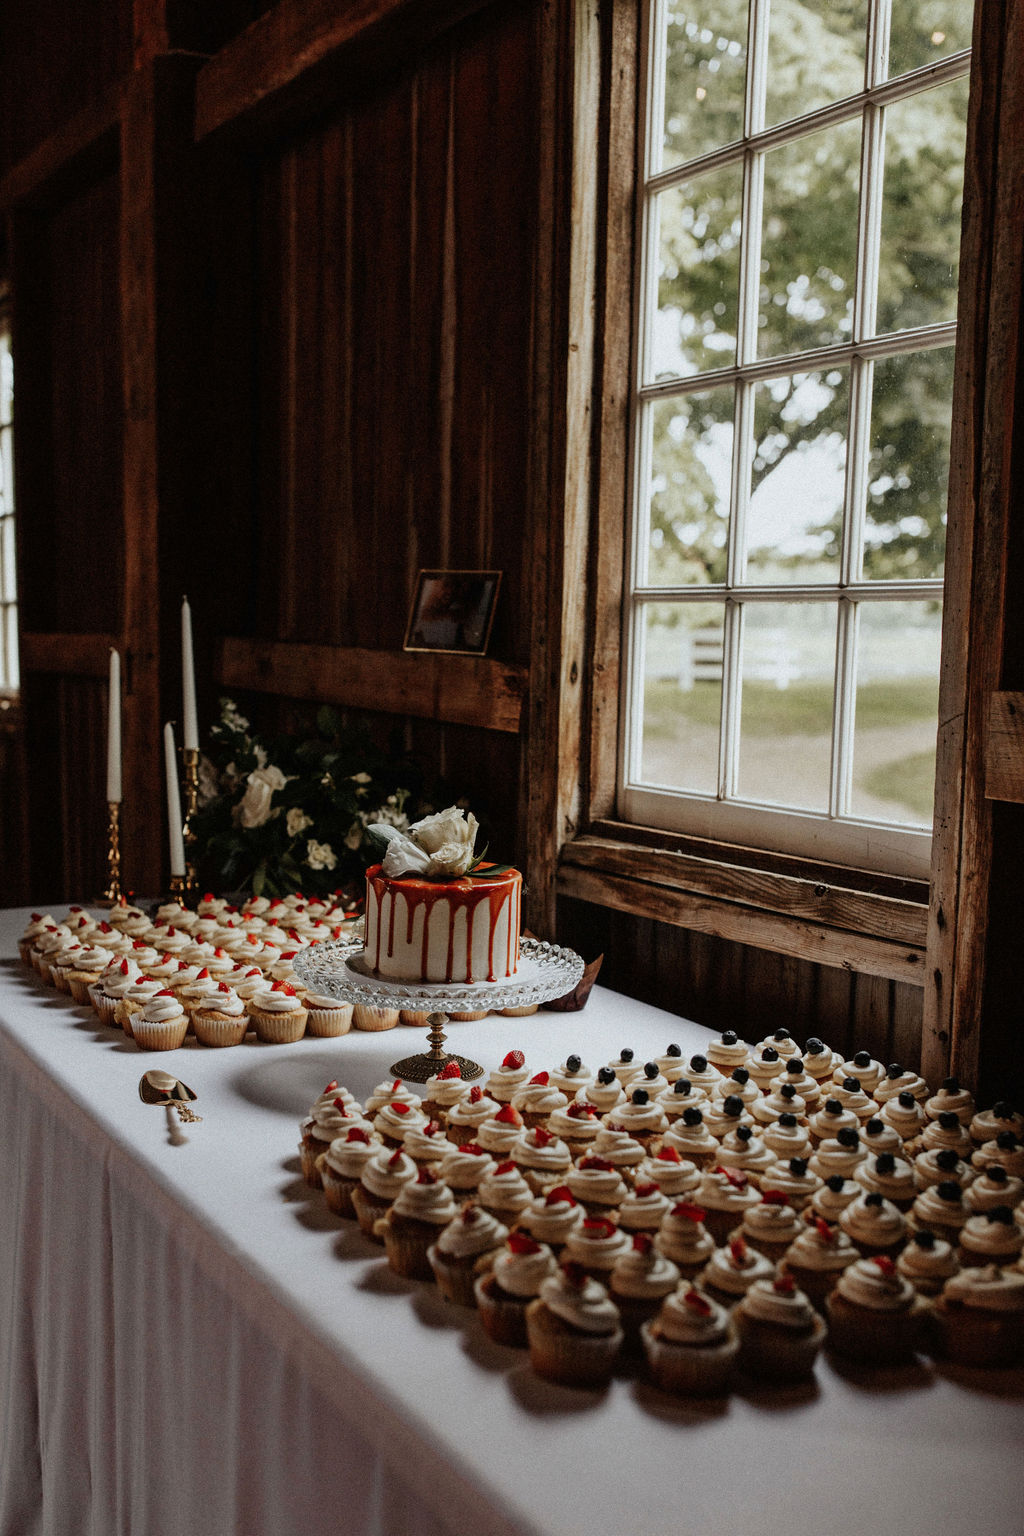 A Cakabakery dessert table set